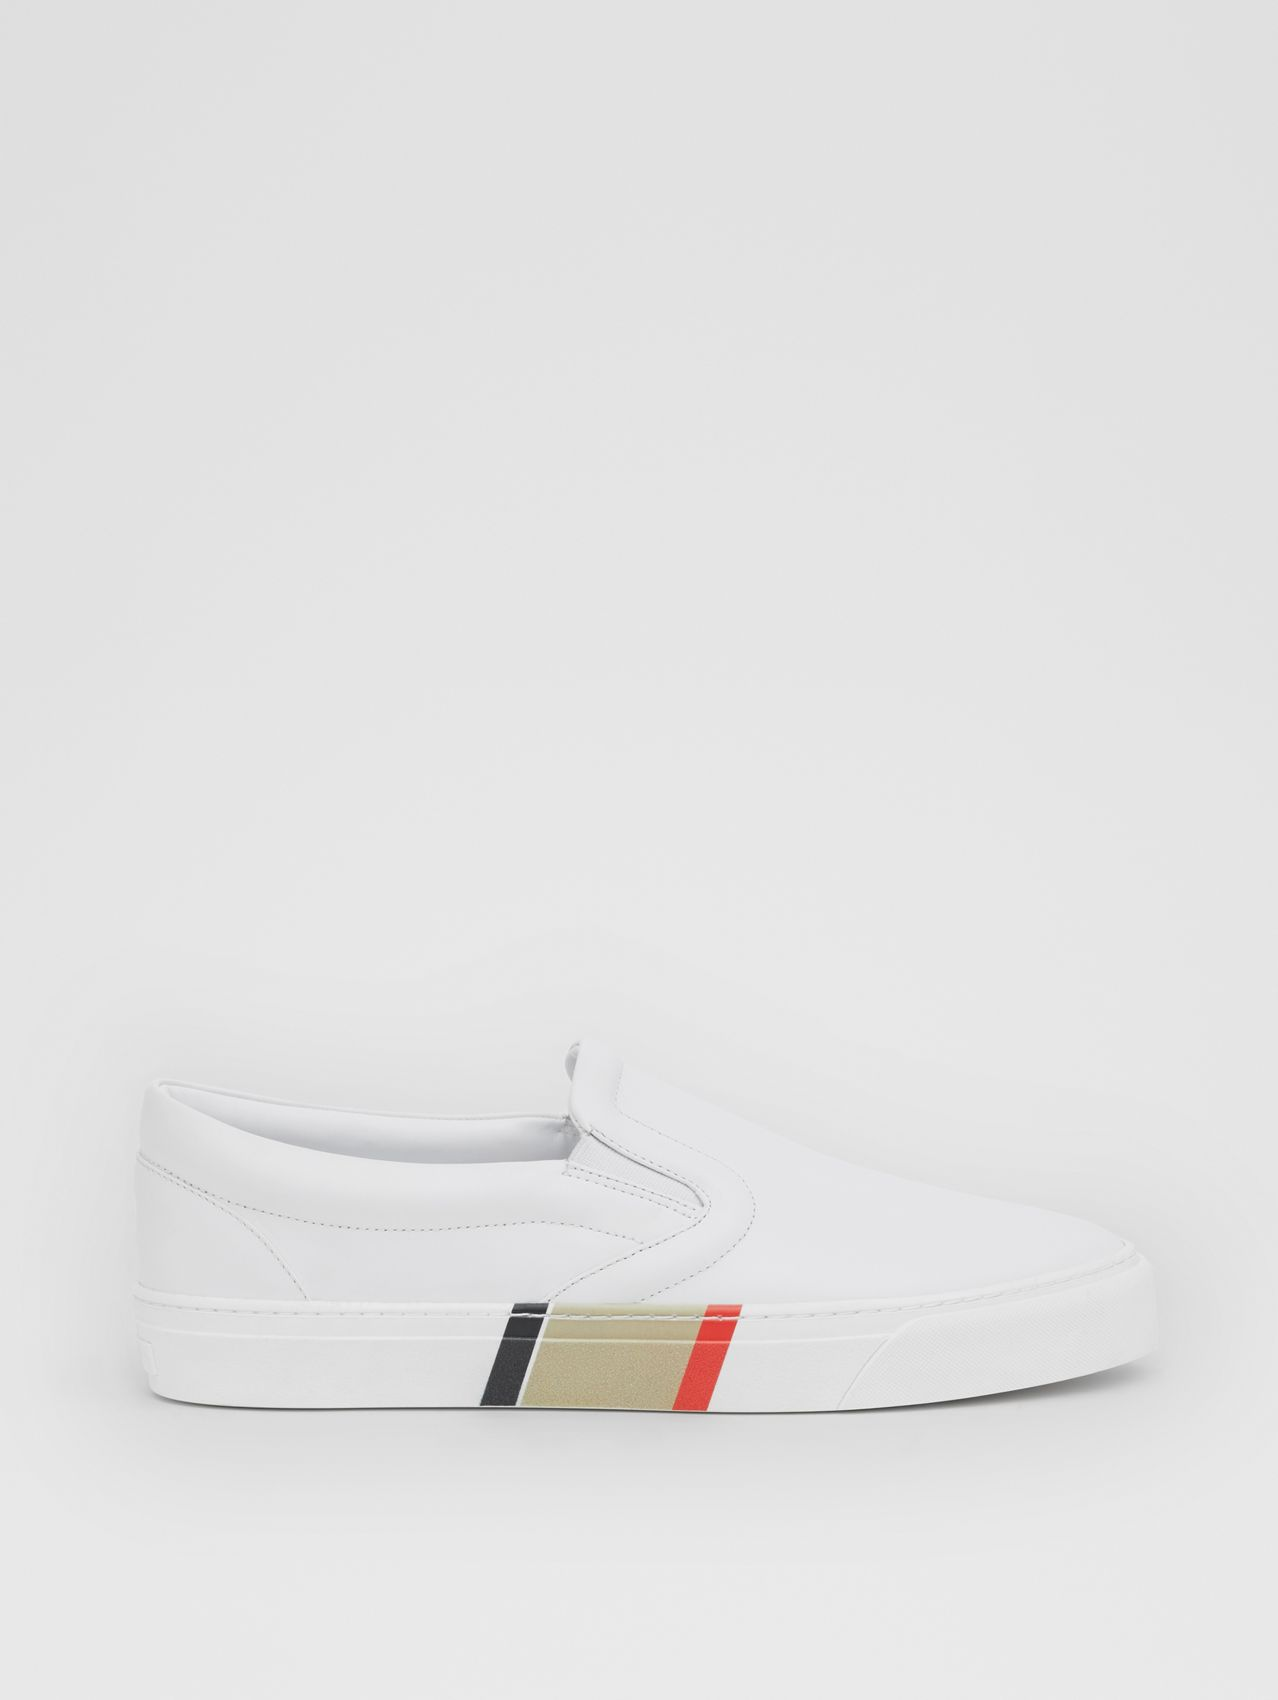 Bio-based Sole Leather Slip-on Sneakers in Optic White